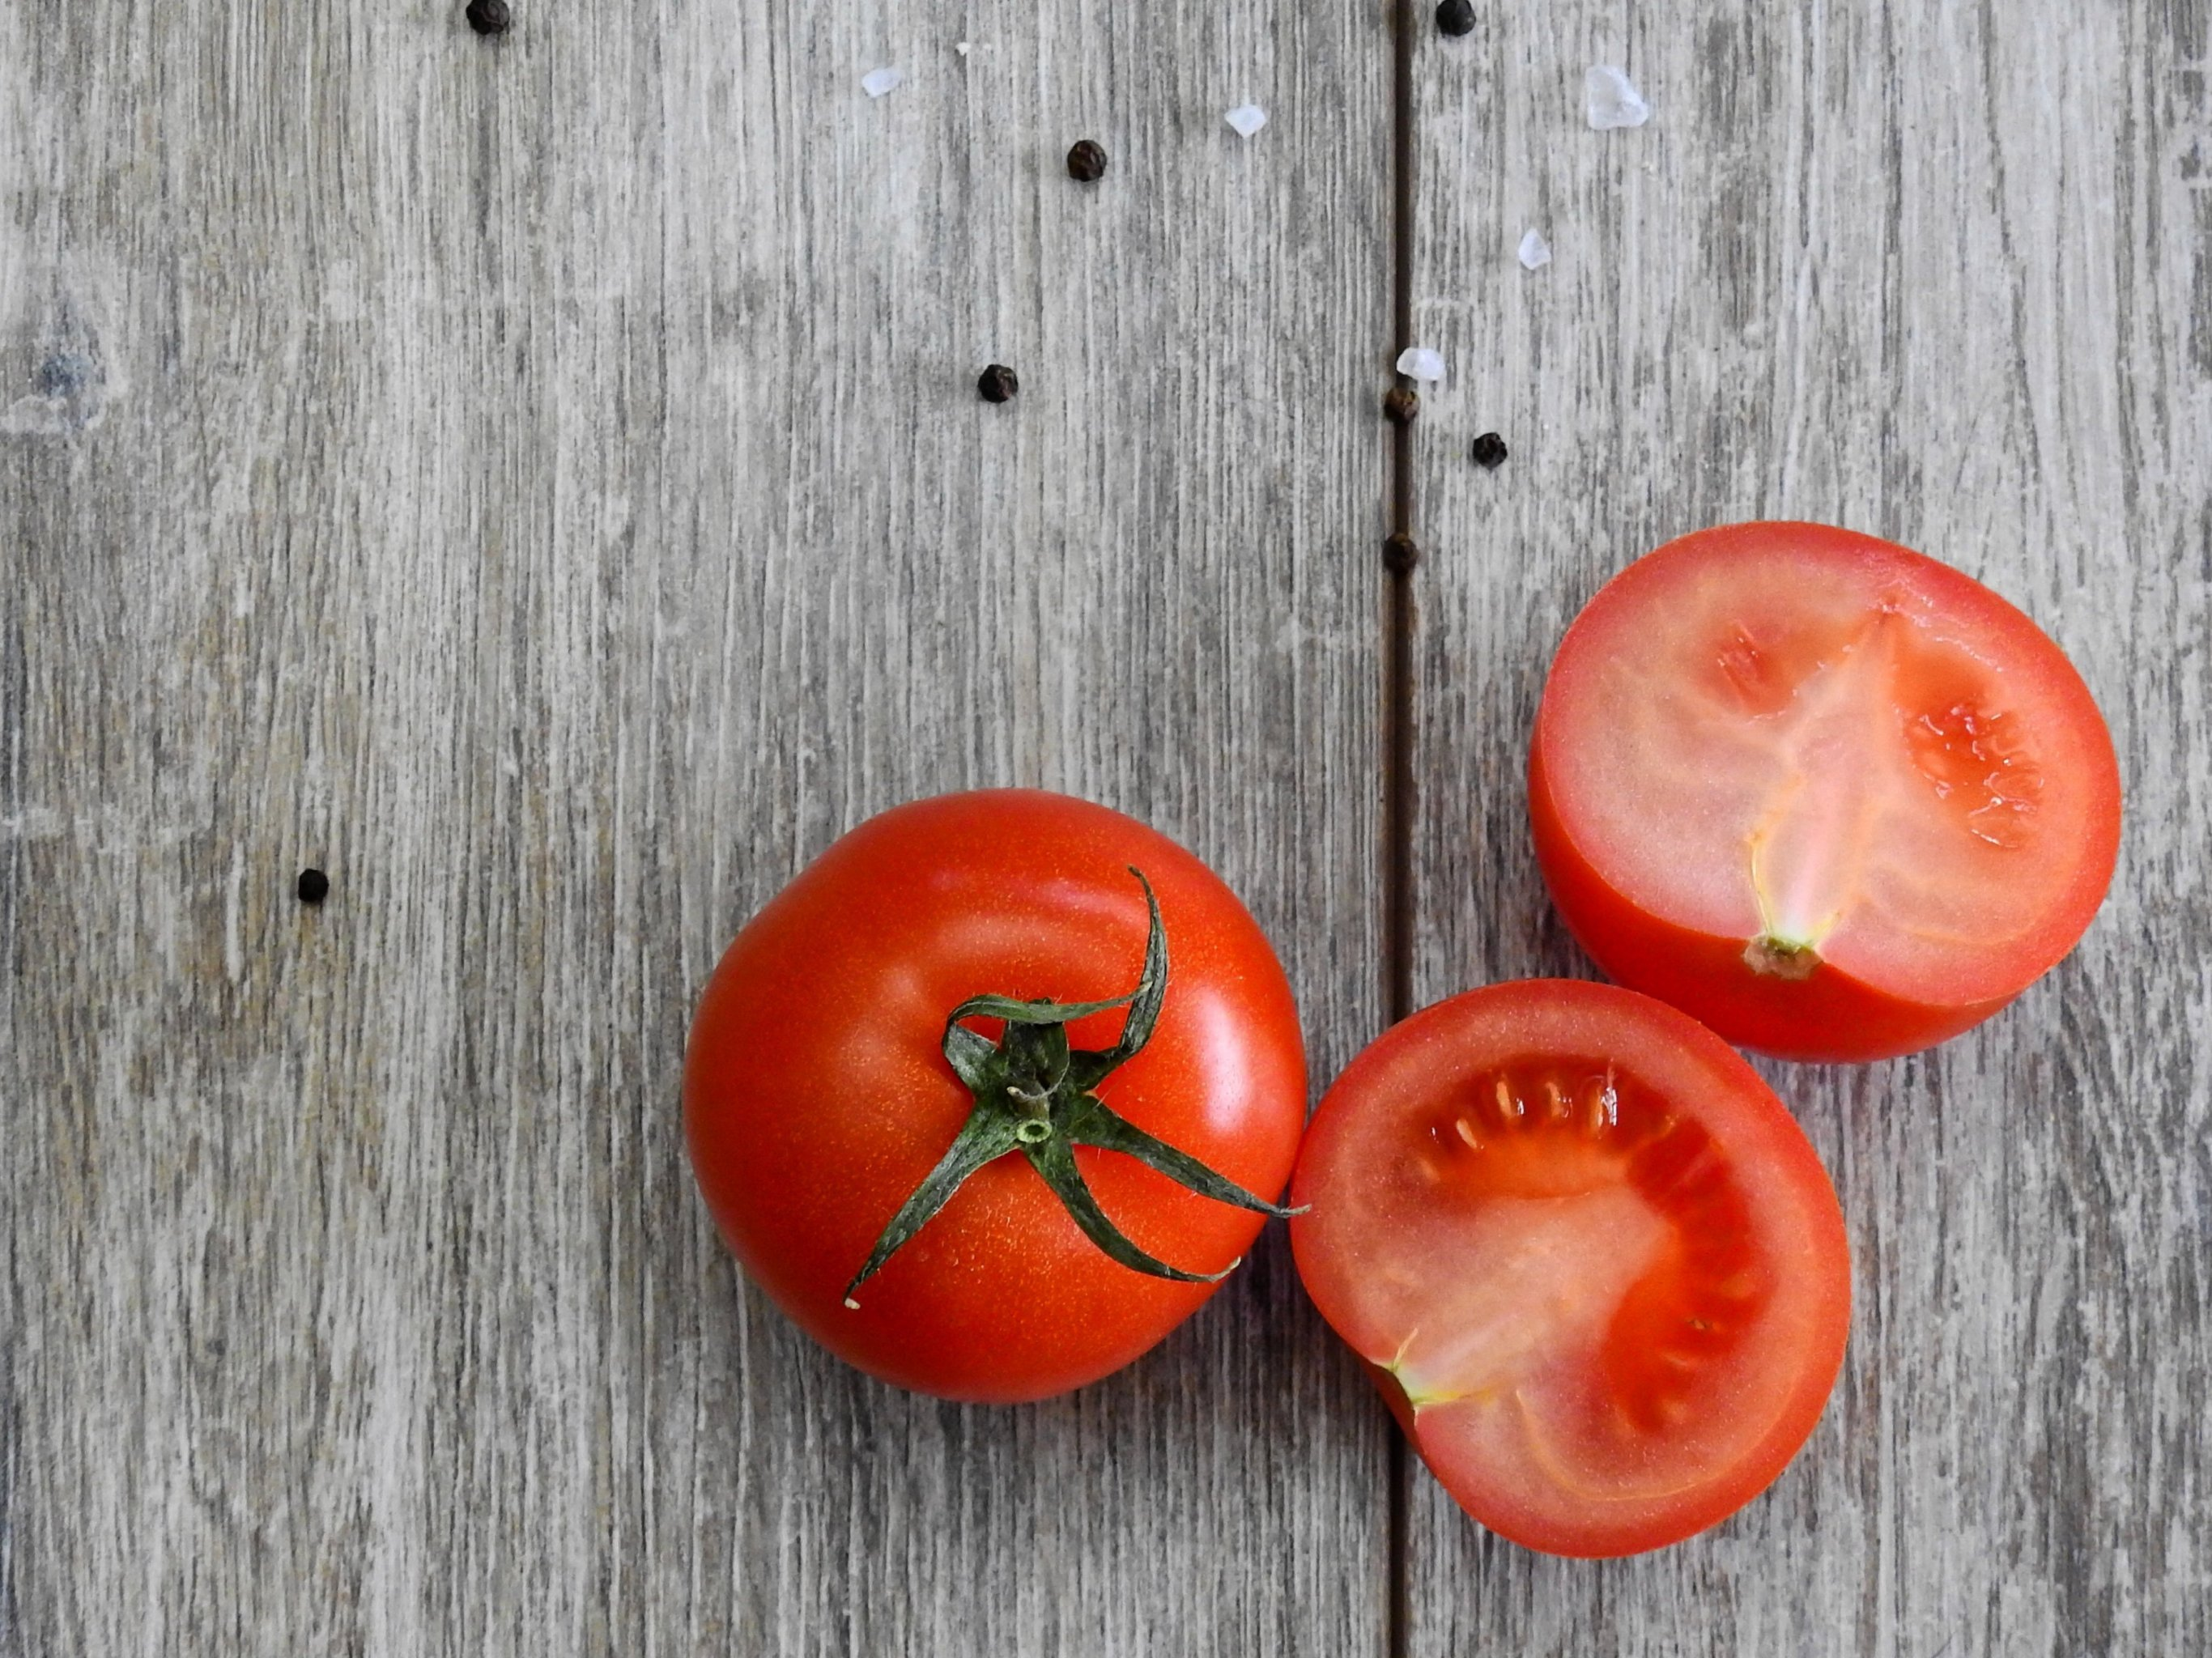 Tomatoes Wallpaper Iphone Android Desktop Backgrounds